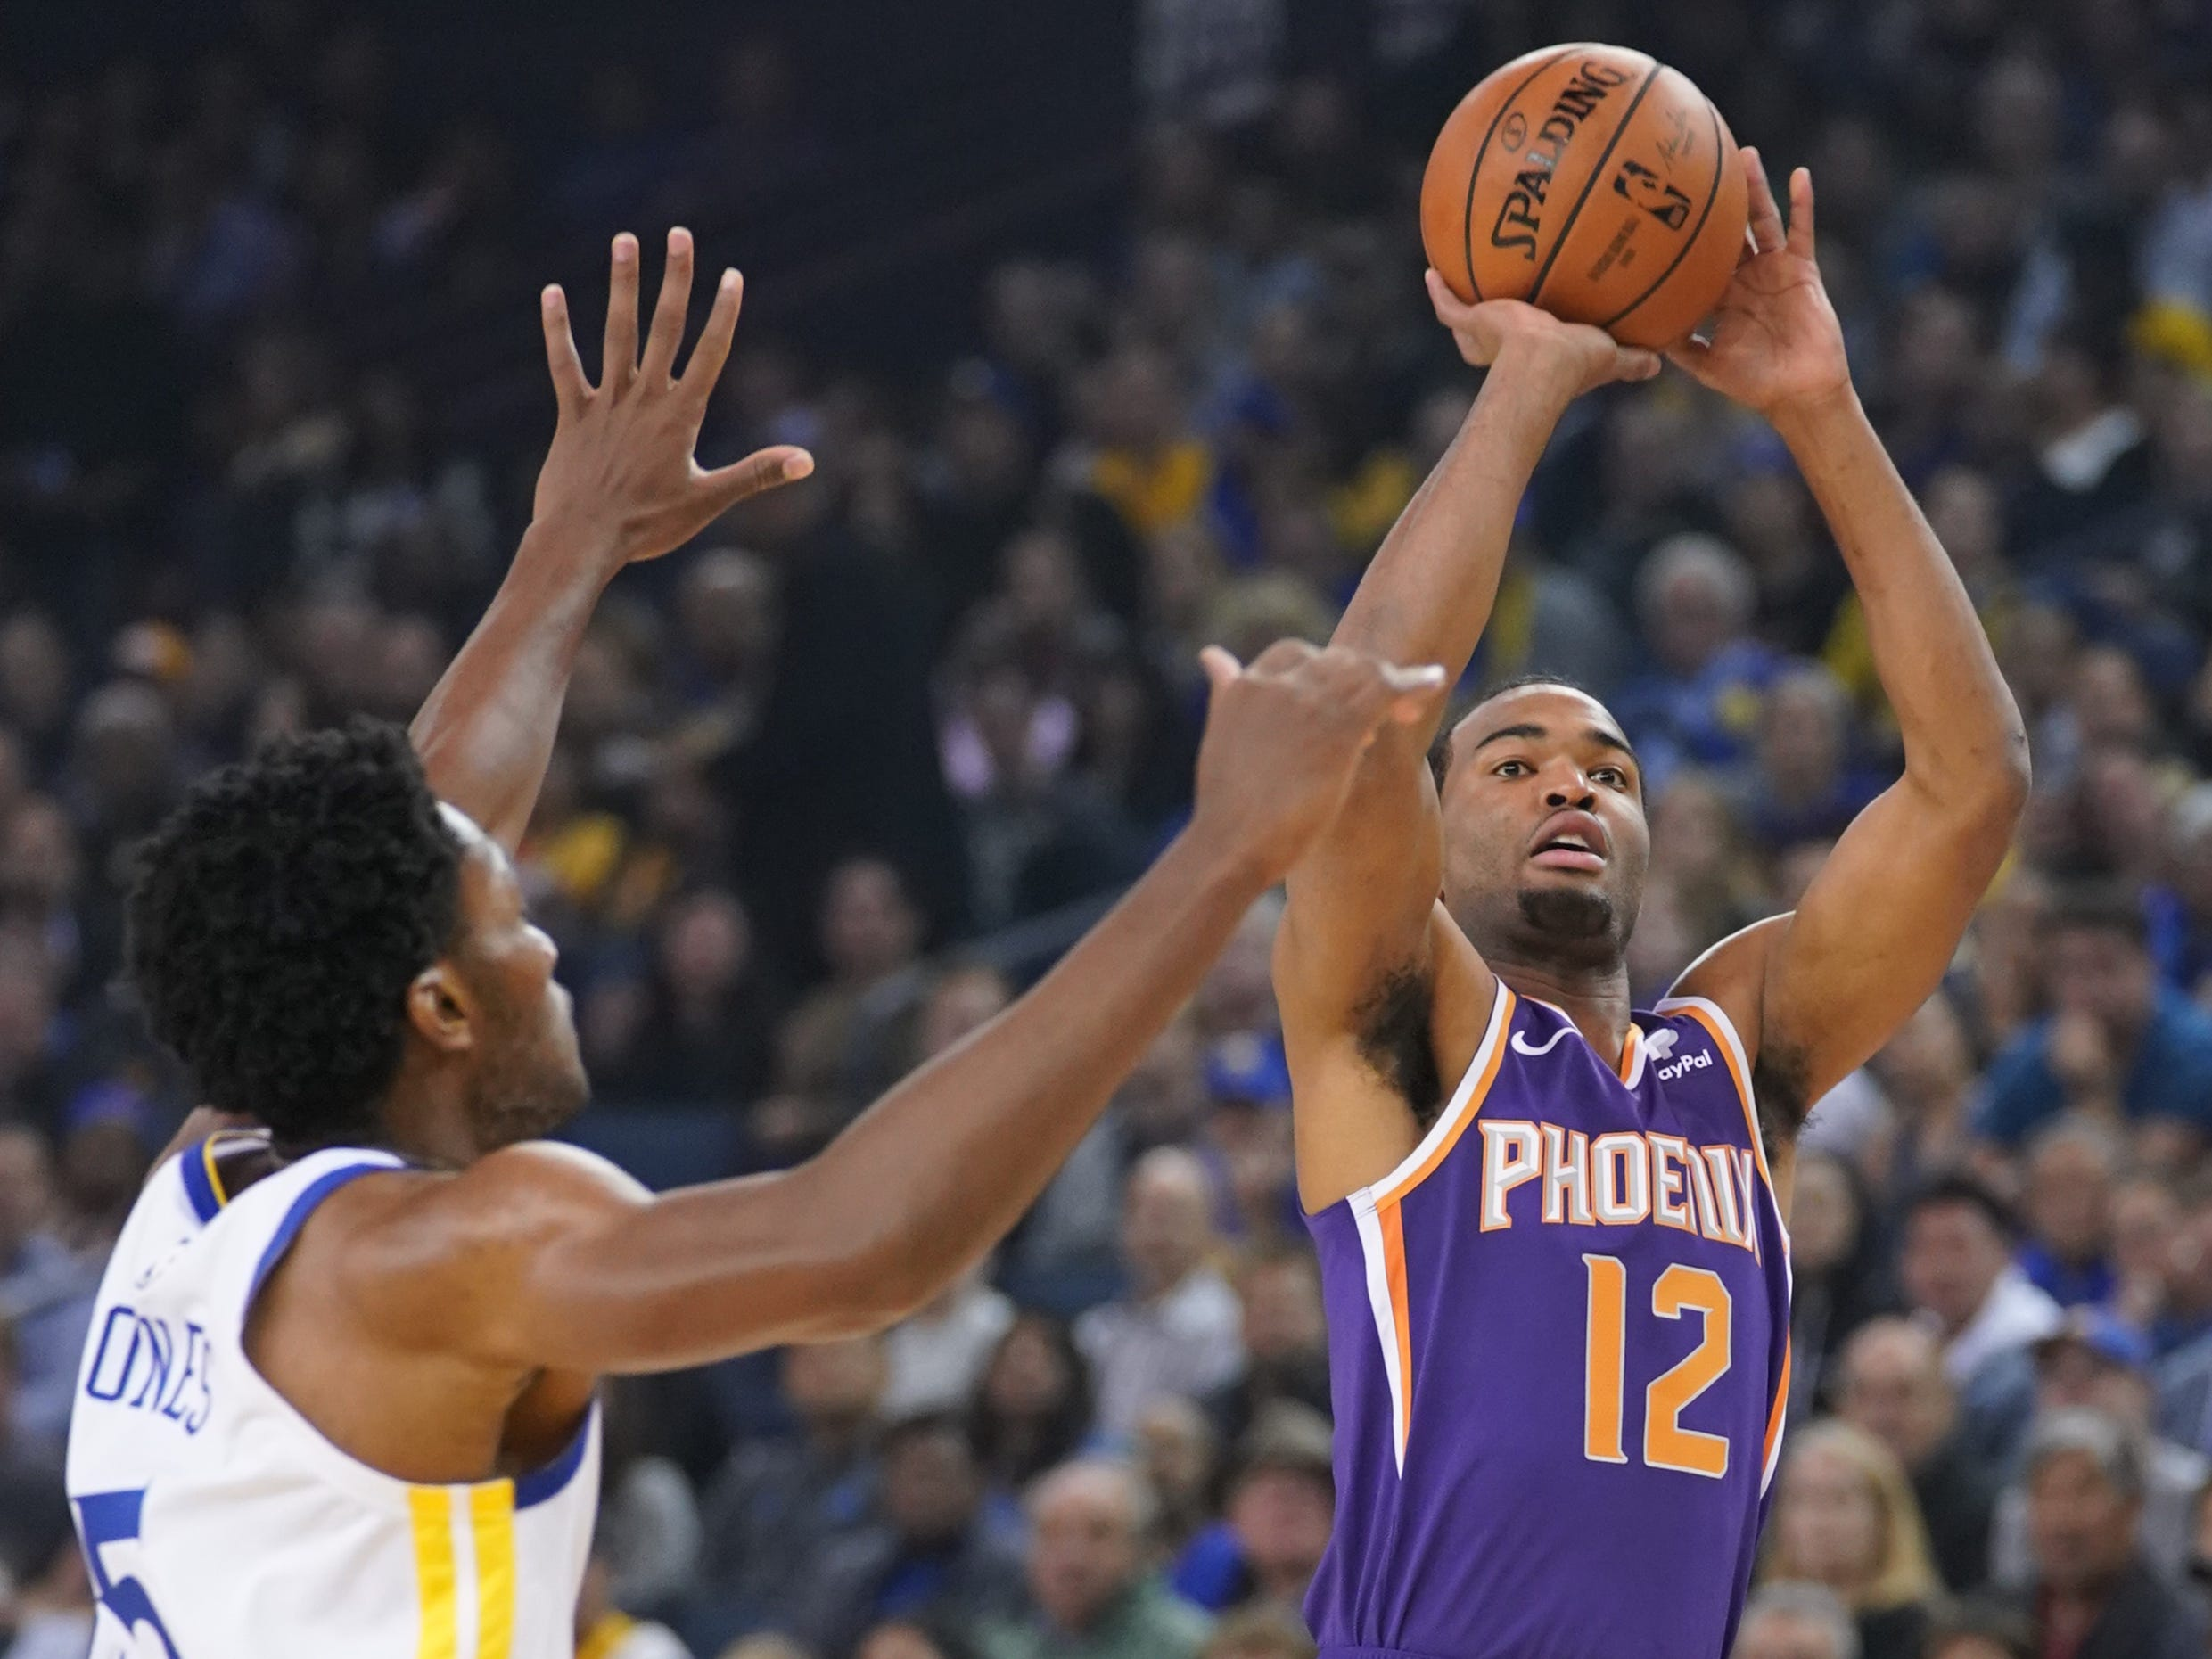 October 22, 2018; Oakland, CA, USA; Phoenix Suns forward TJ Warren (12) shoots the basketball against Golden State Warriors center Damian Jones (15) during the first quarter at Oracle Arena. Mandatory Credit: Kyle Terada-USA TODAY Sports